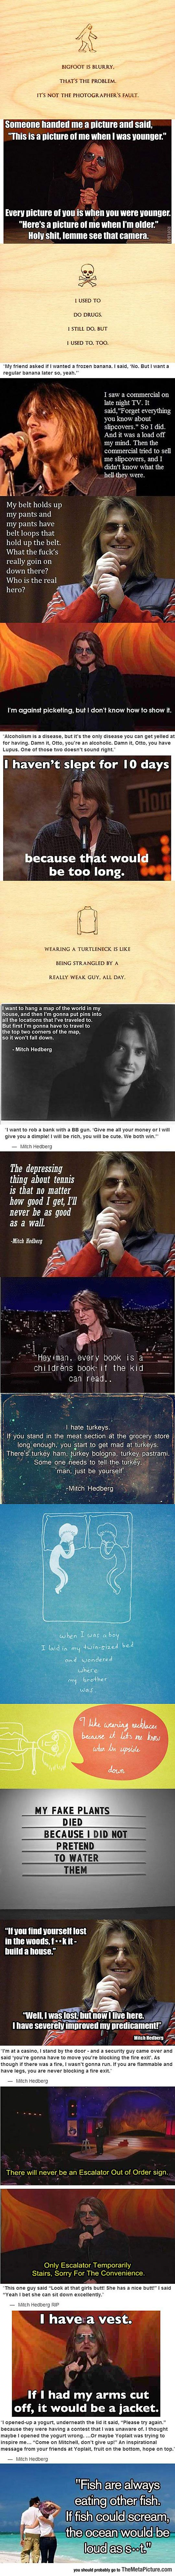 Mitch Hedberg Was Brilliant